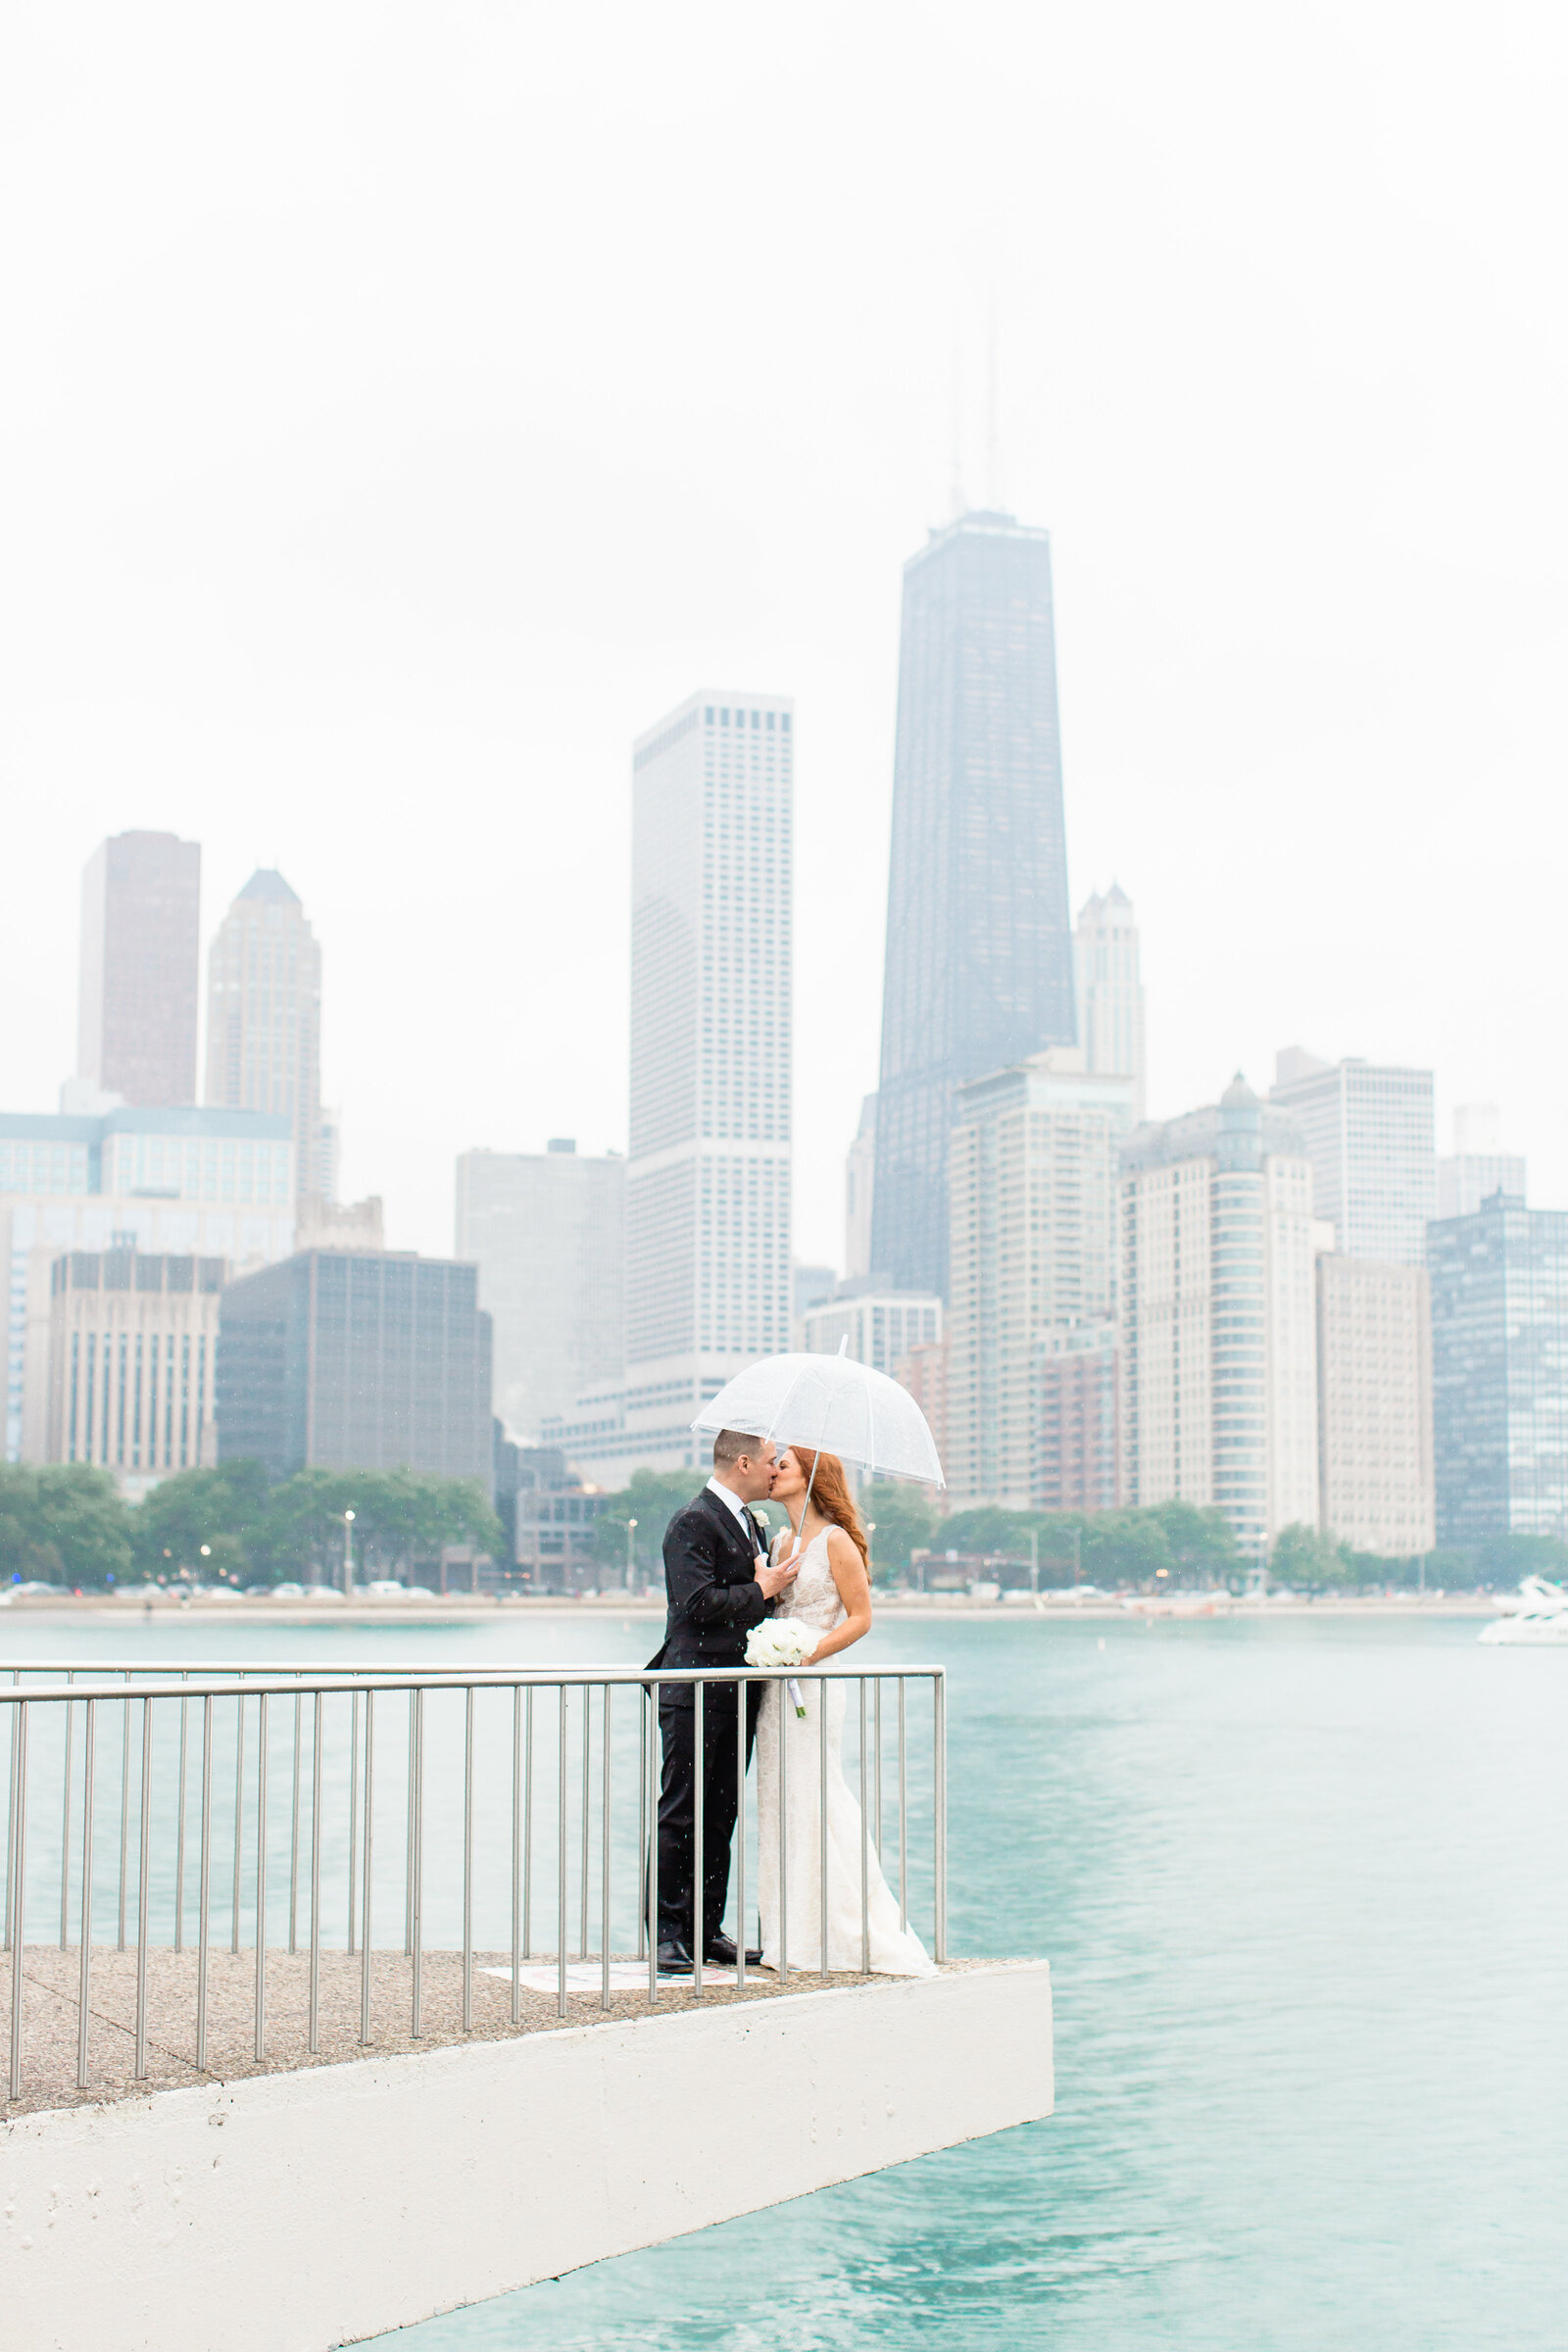 lindsey-taylor-photography-chicago-wedding-photographer271